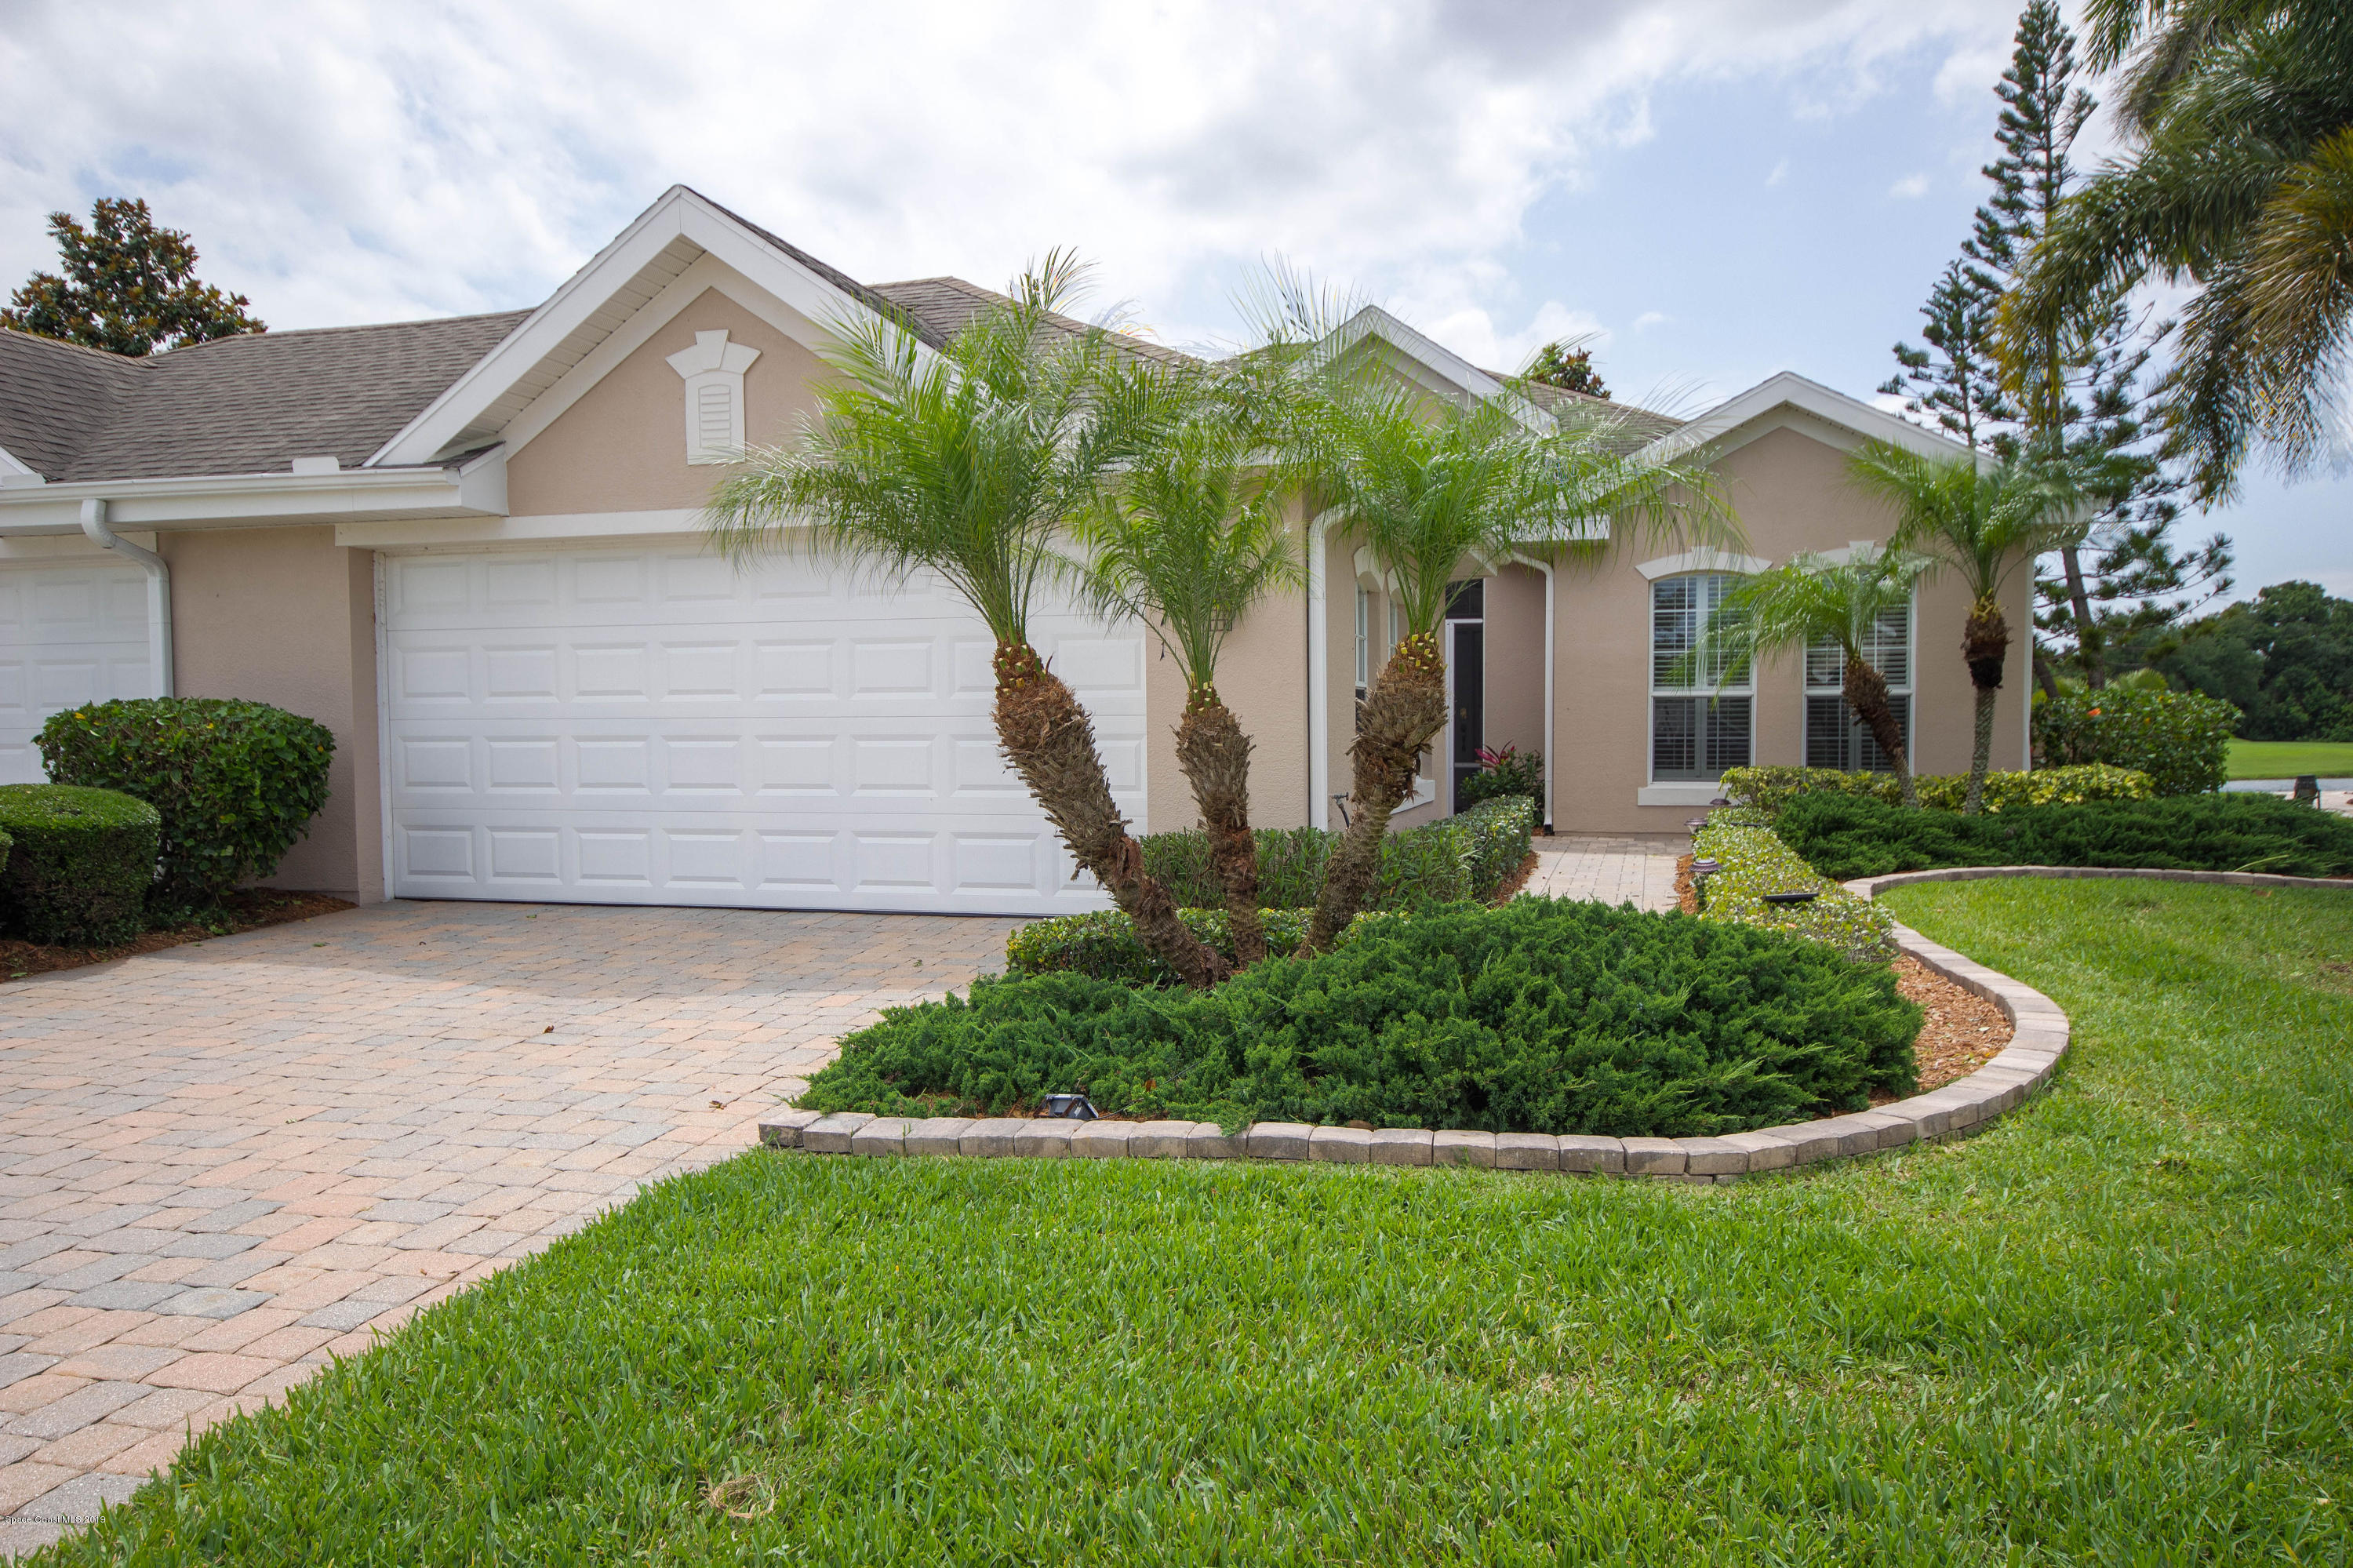 Single Family Homes for Sale at 4371 Aberdeen Rockledge, Florida 32955 United States